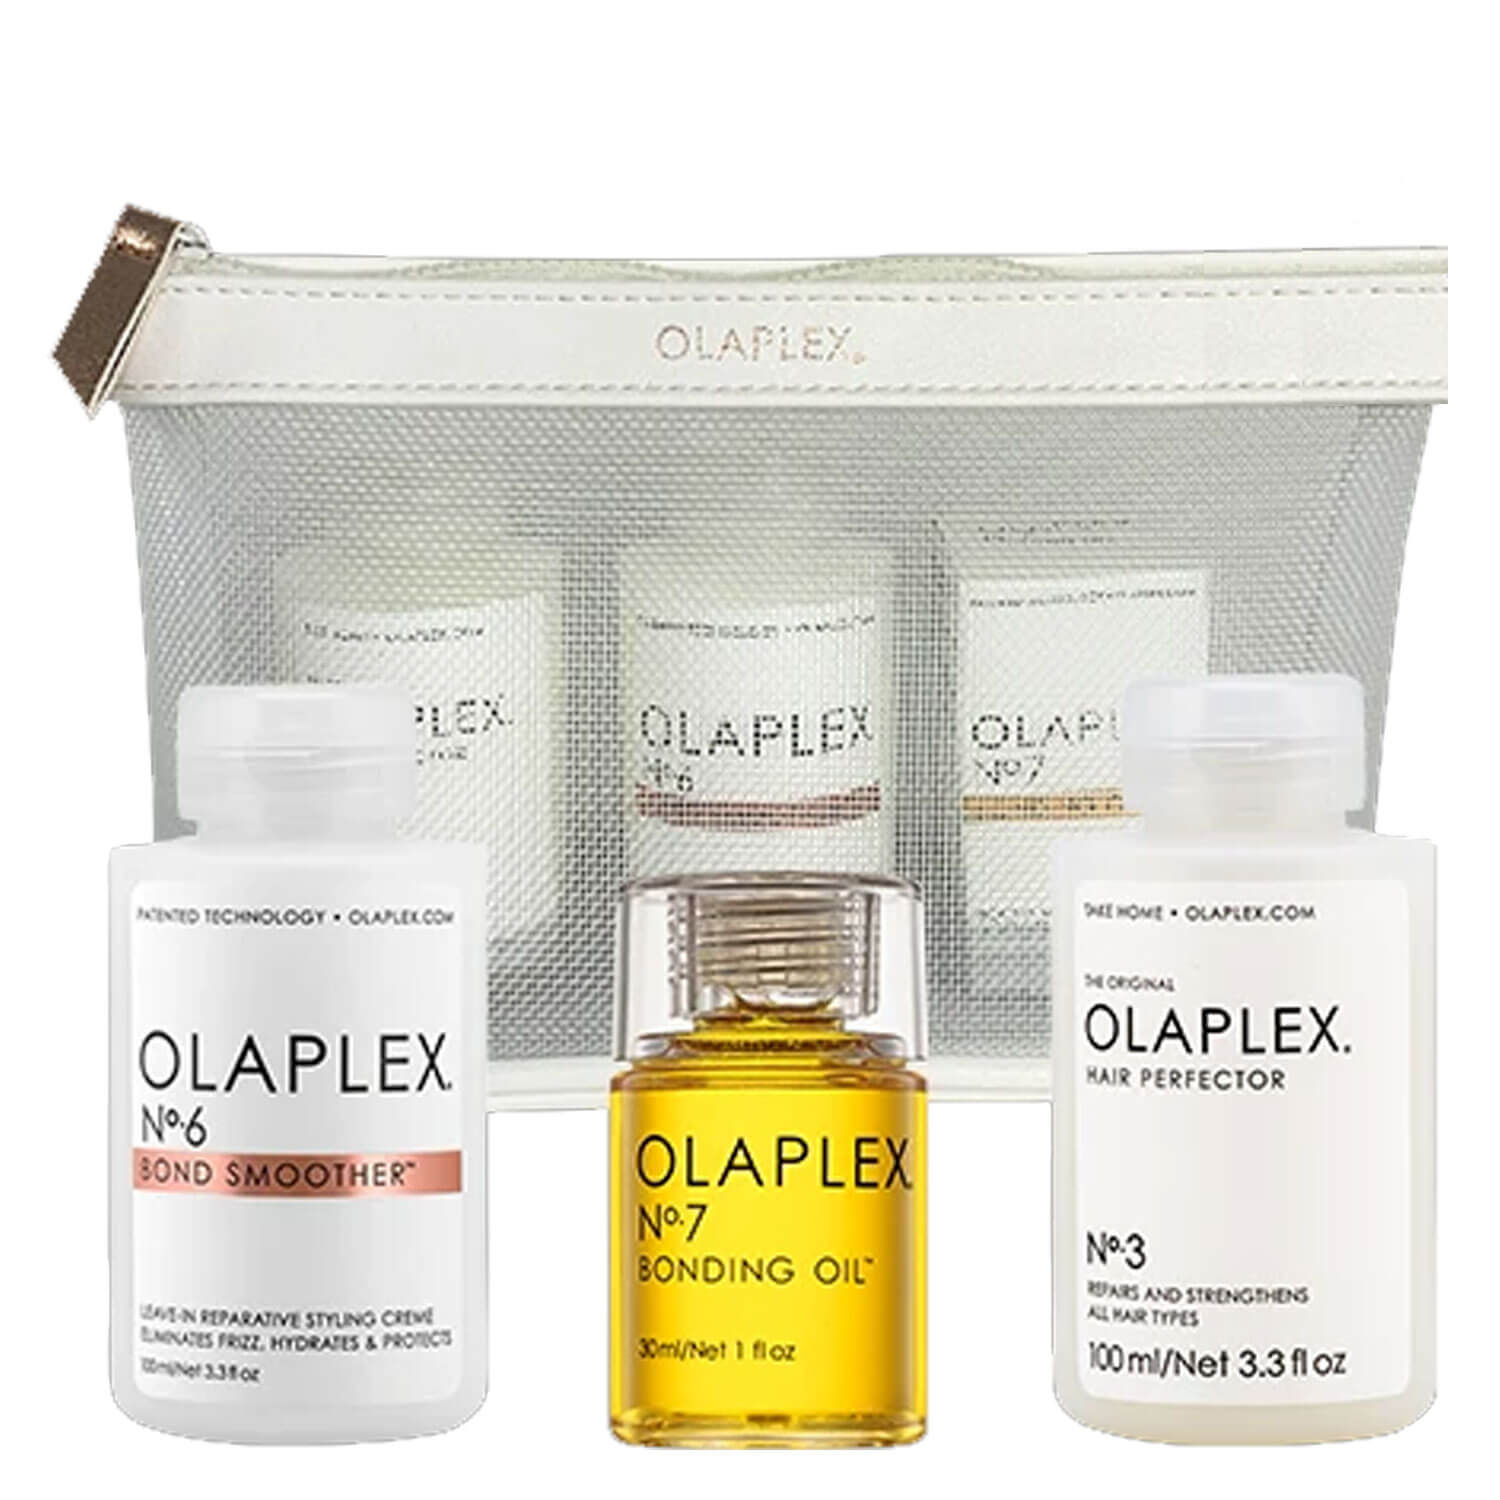 Olaplex - Take me with you